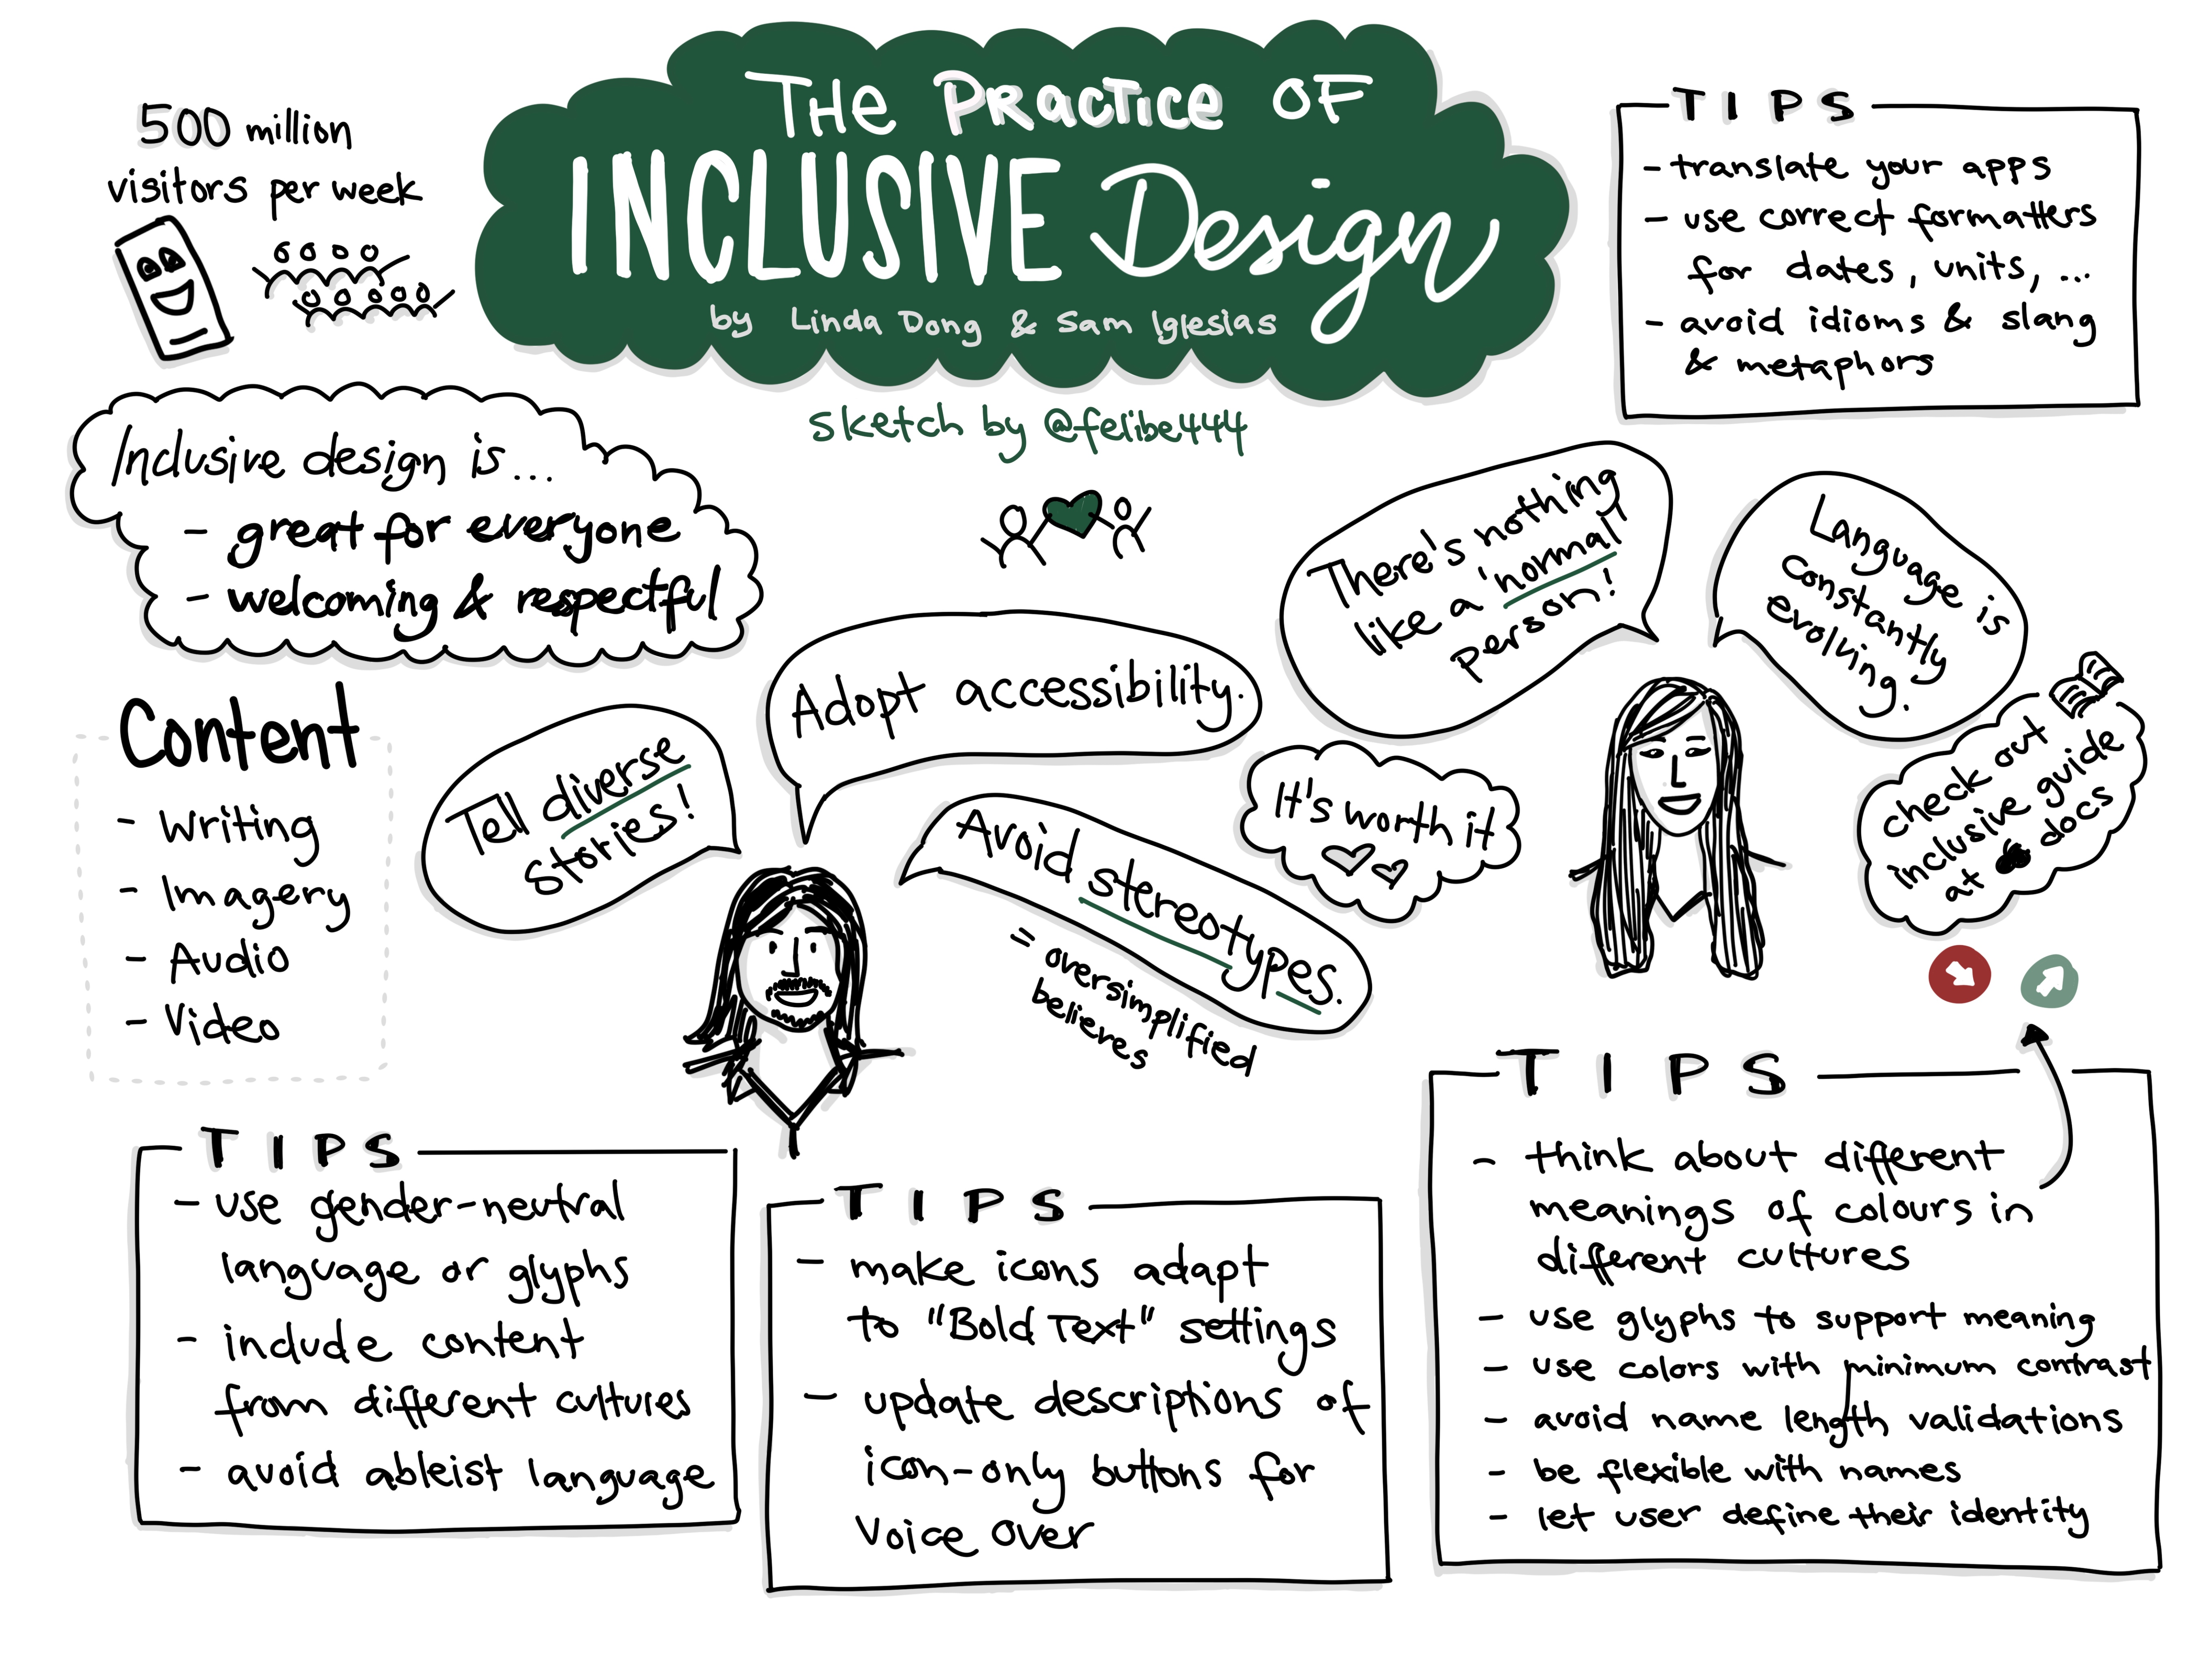 Sketchnote about 'The practice of inclusive design' at WWDC21 with a lot of practical tips on how to make your app or game more inclusive. Favorite takeaways are Tell diverse stories, adopt accessibility, avoid stereotypes, there's nothing like a normal person, language is constantly evolving.